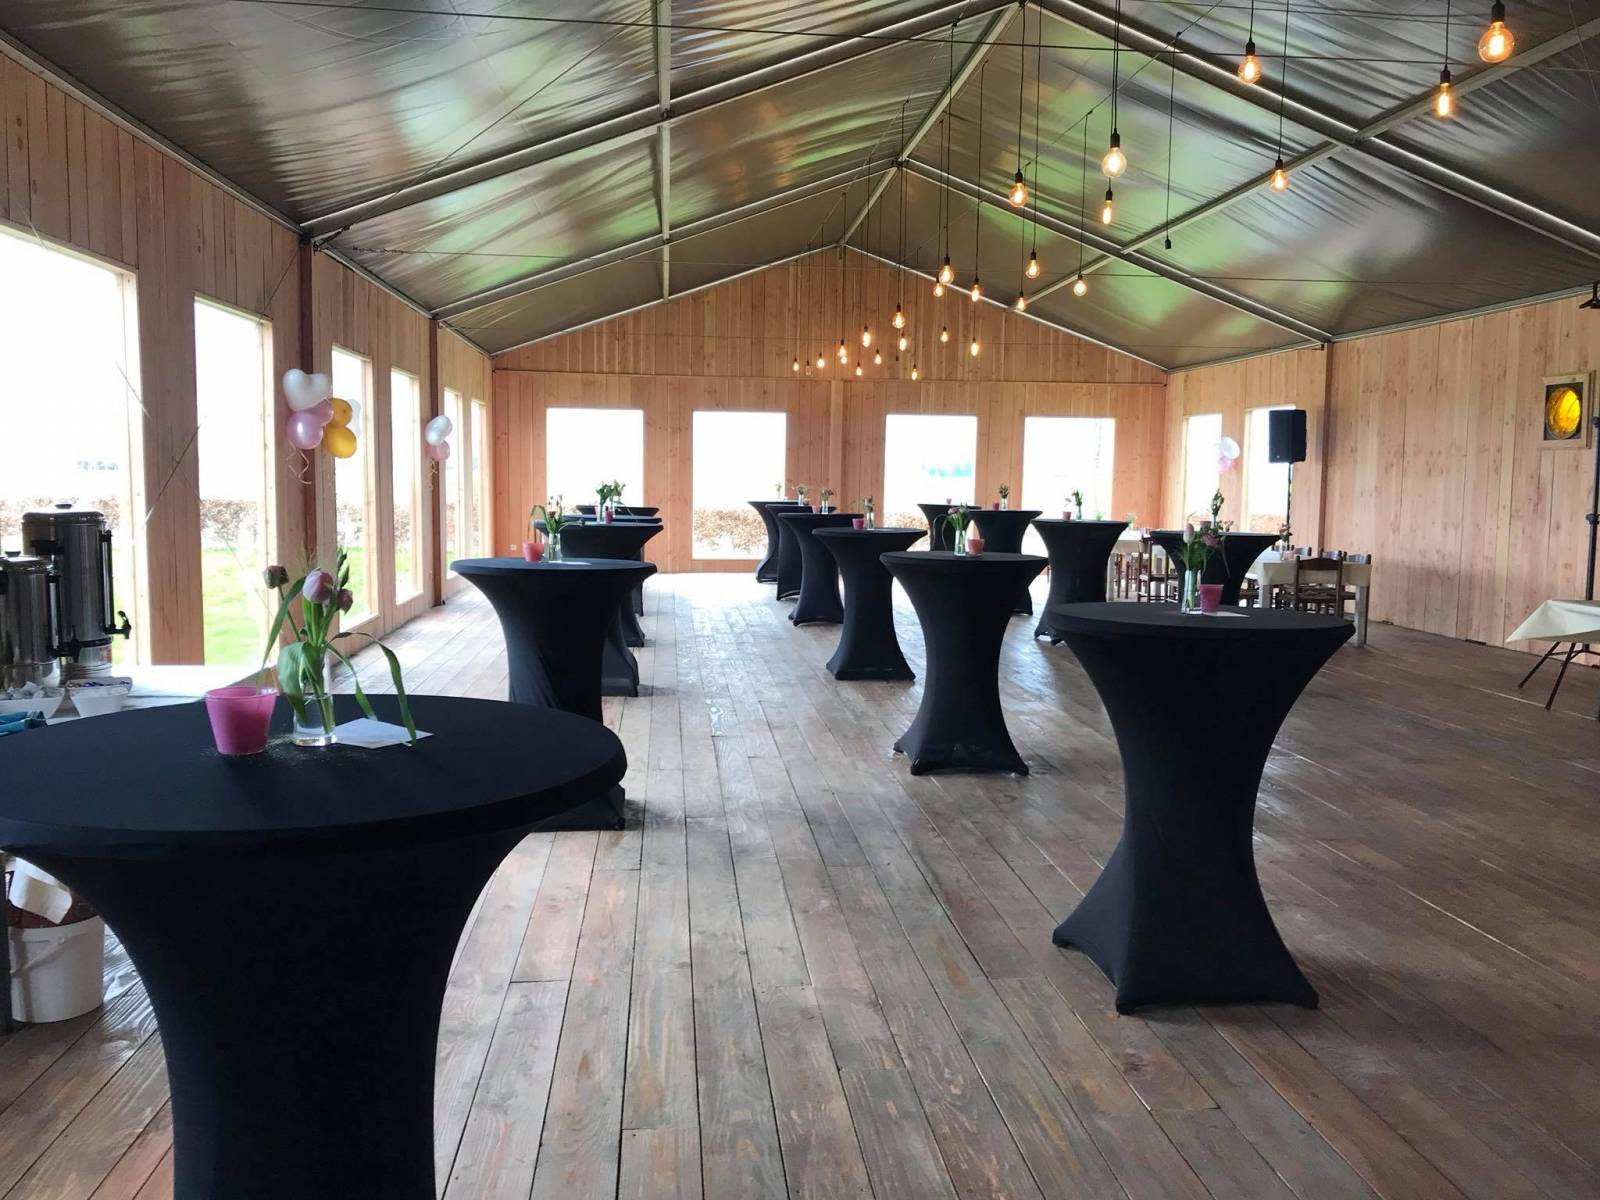 Domein 't Eikennest - Feestzaal - Eventlocatie - House of Events - 8